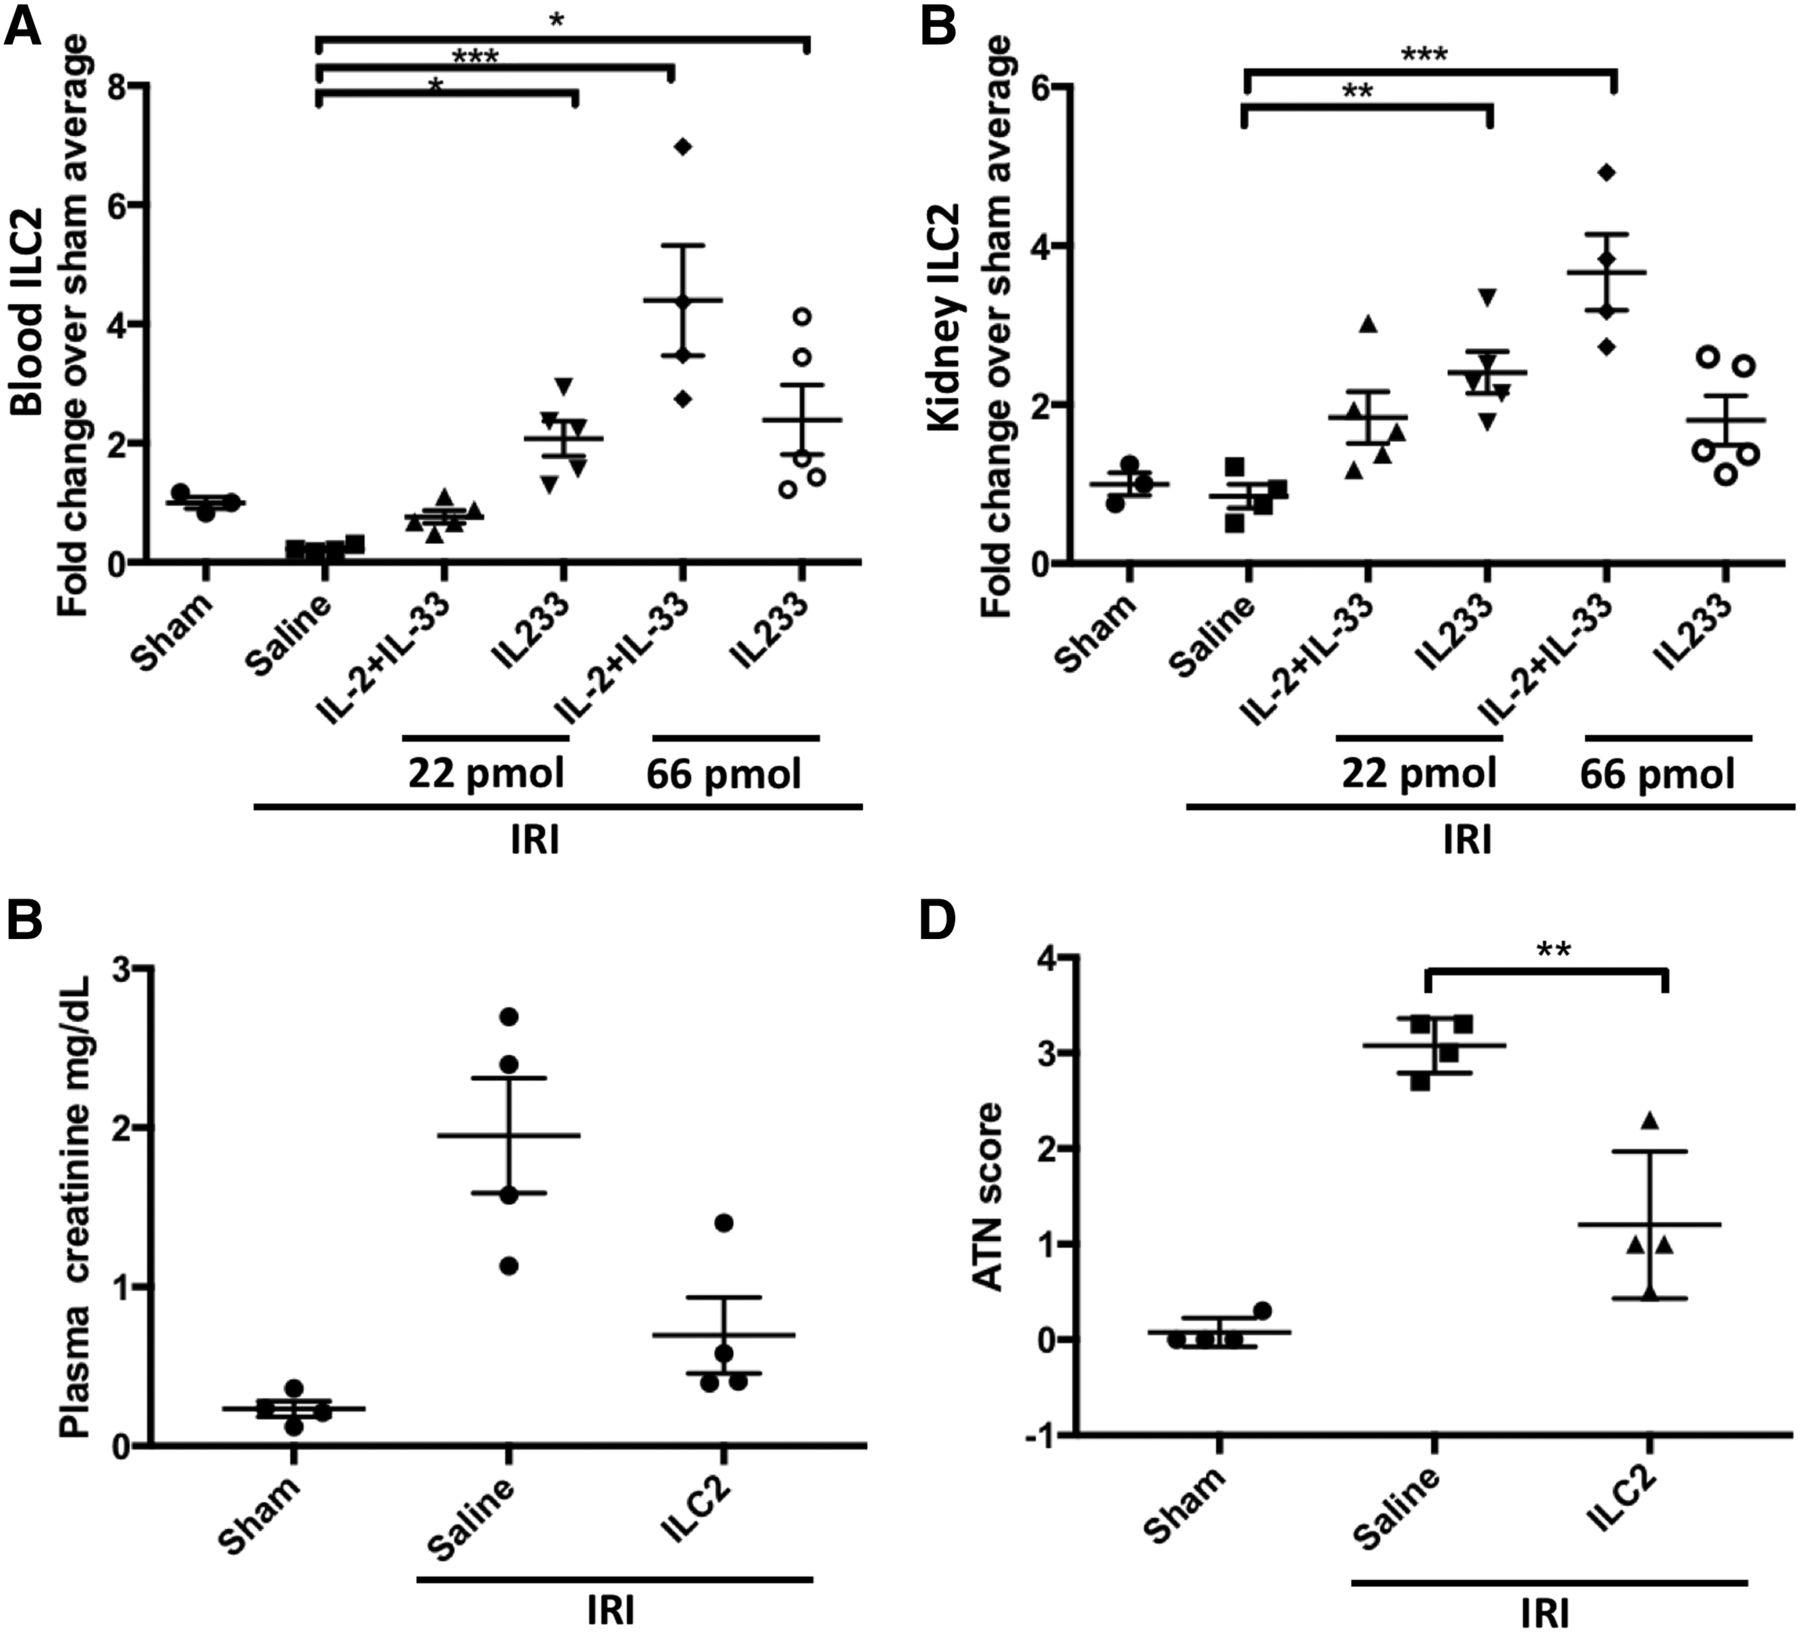 IL233, A Novel IL-2 and IL-33 Hybrid Cytokine, Ameliorates Renal